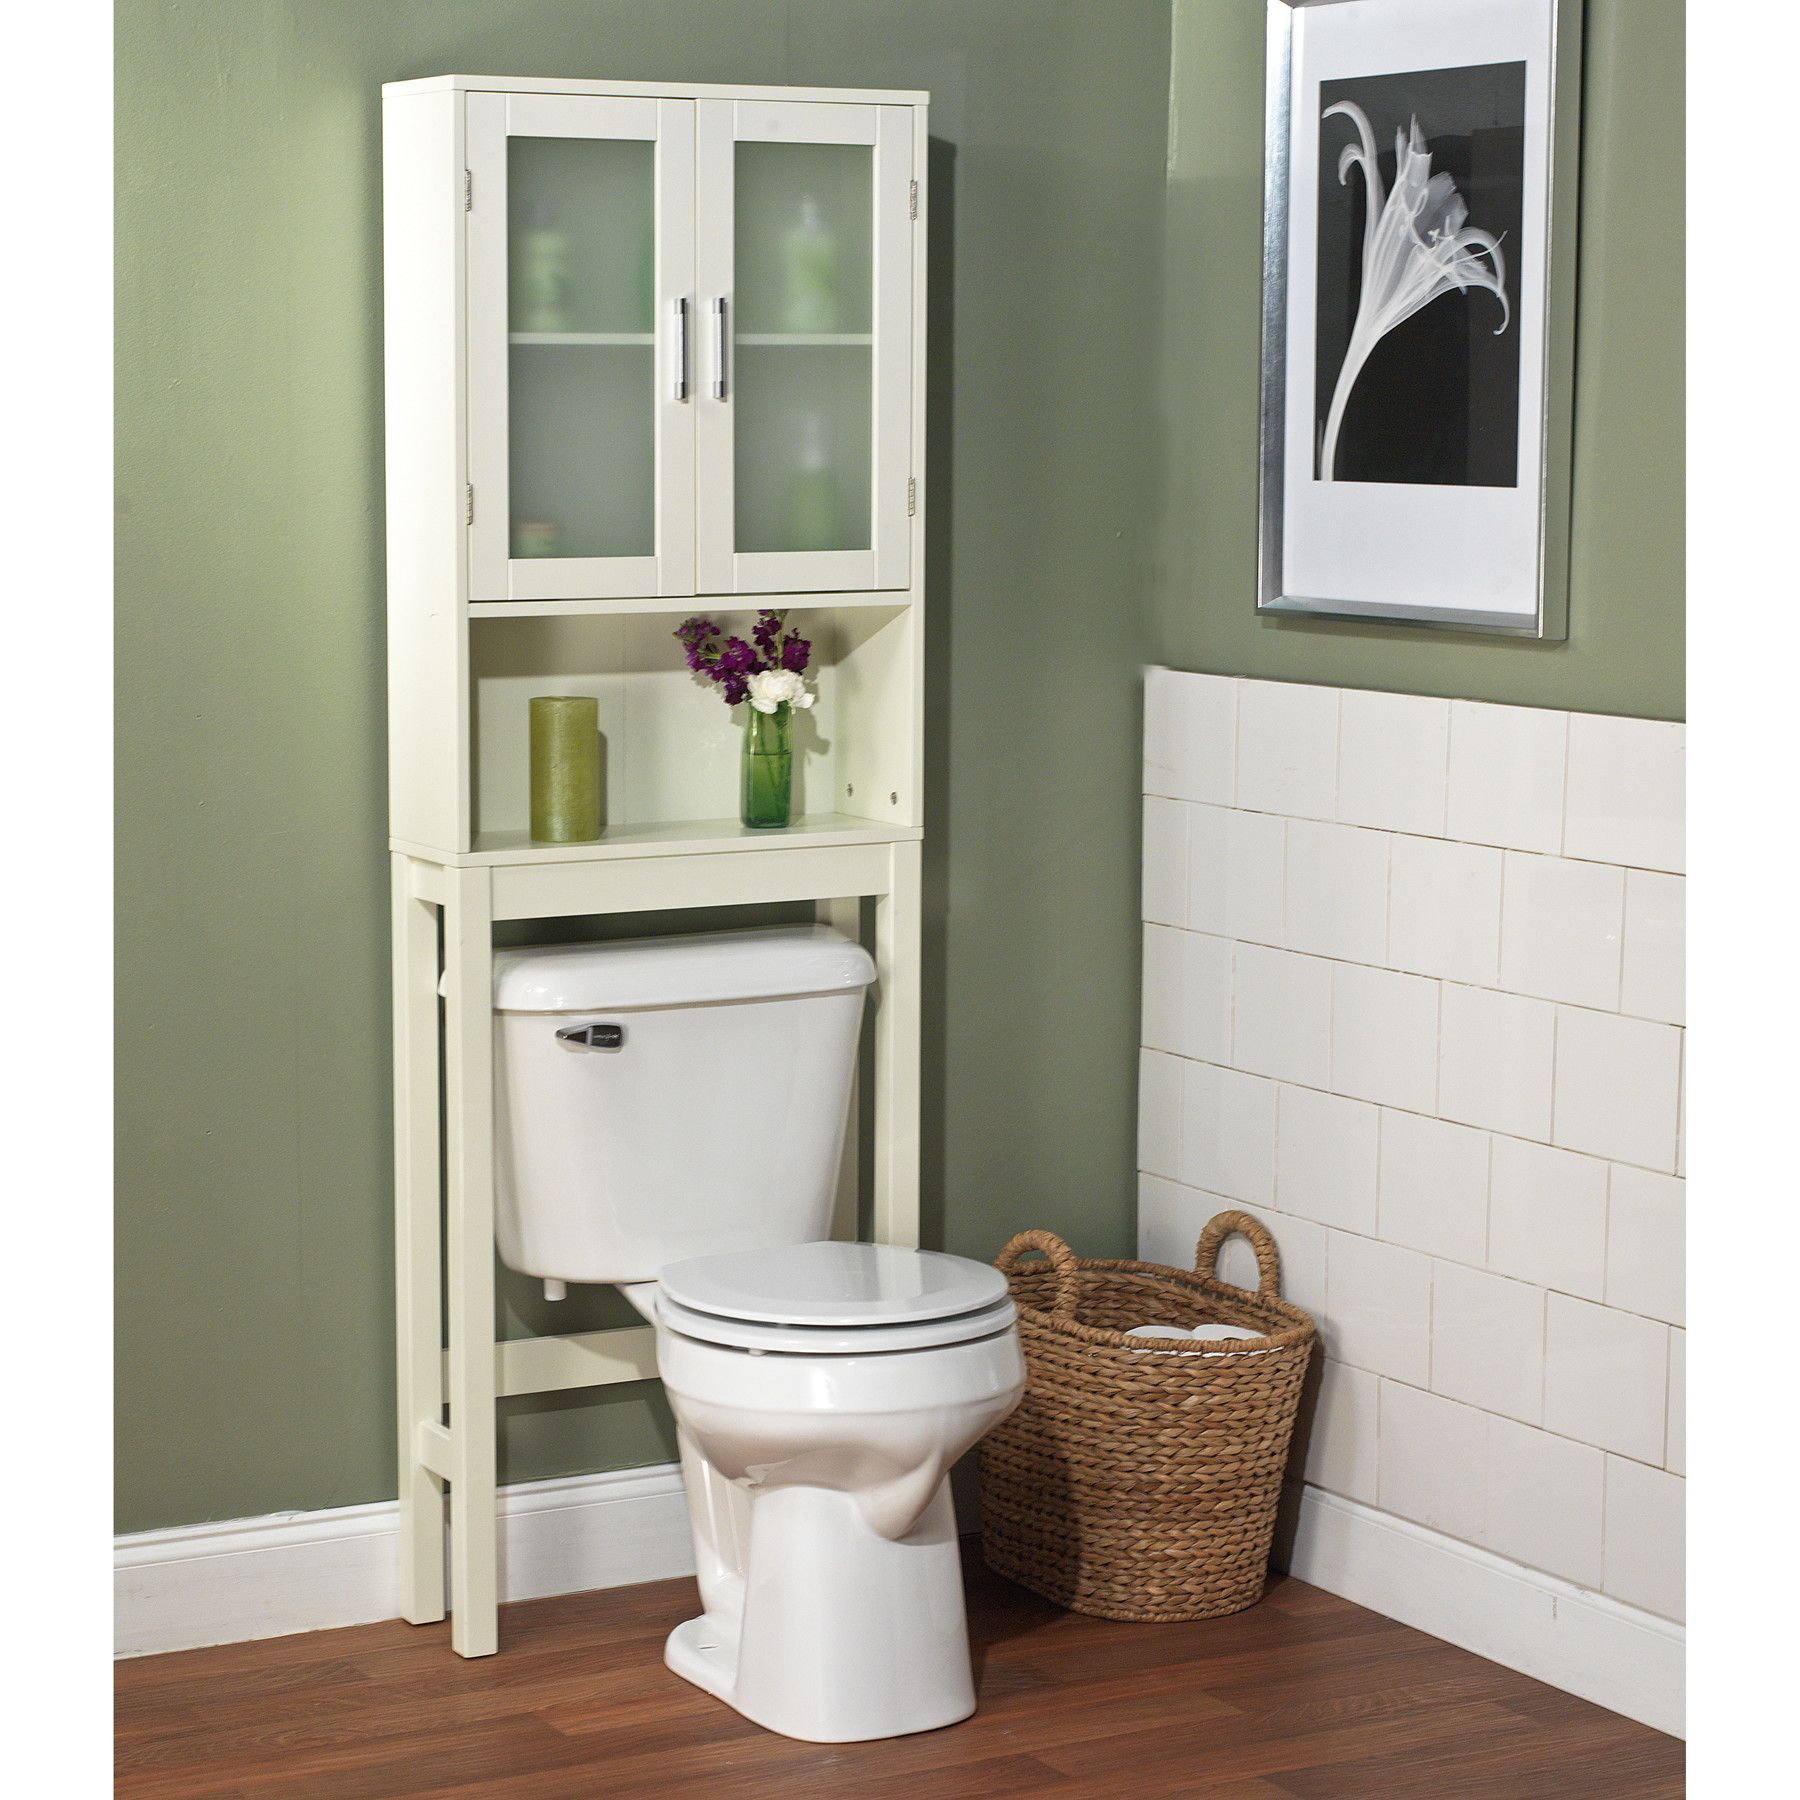 my over free bathroom standing h toilet cabinet storage space saver x web the jenlea value w